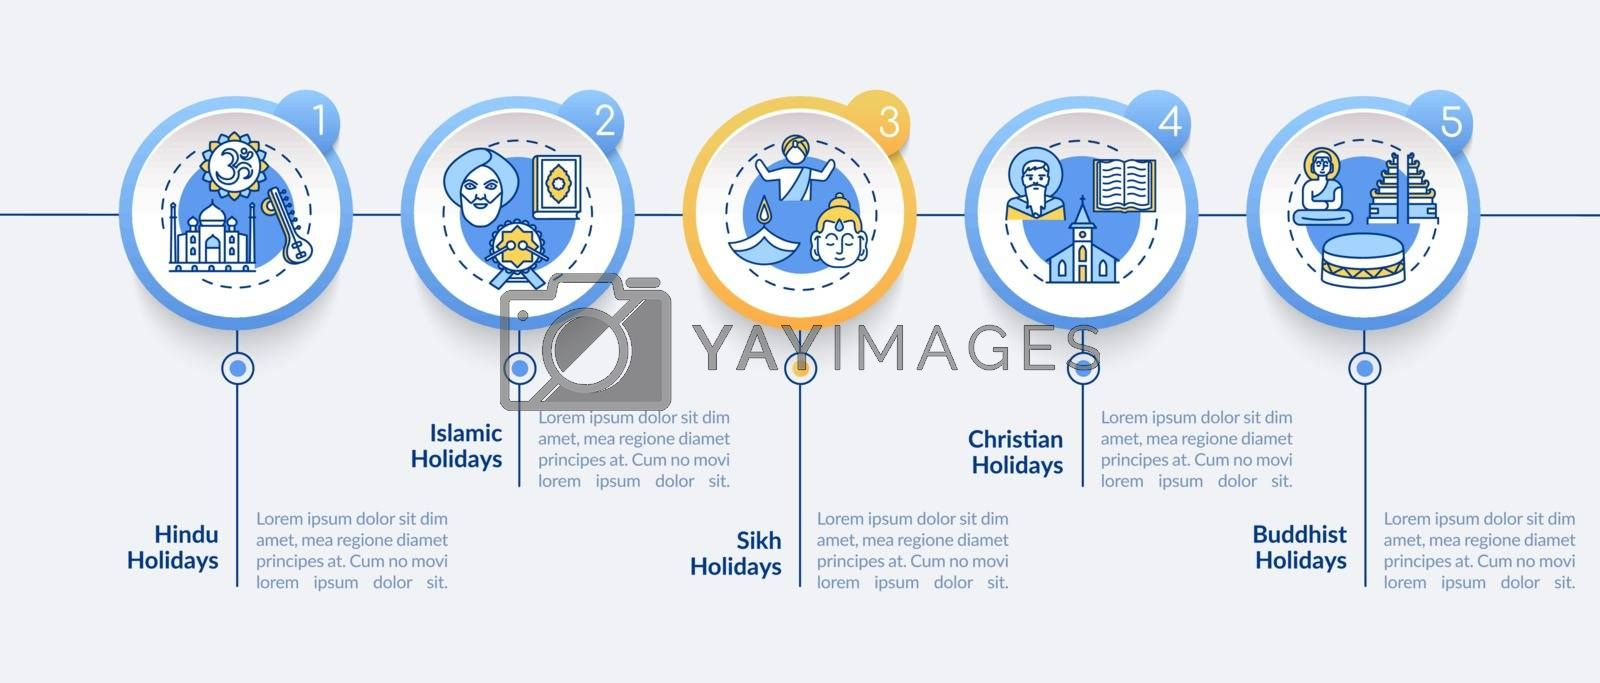 Indian religious holidays vector infographic template. Buddhist holidays. Presentation design elements. Data visualization with 5 steps. Process timeline chart. Workflow layout with linear icons